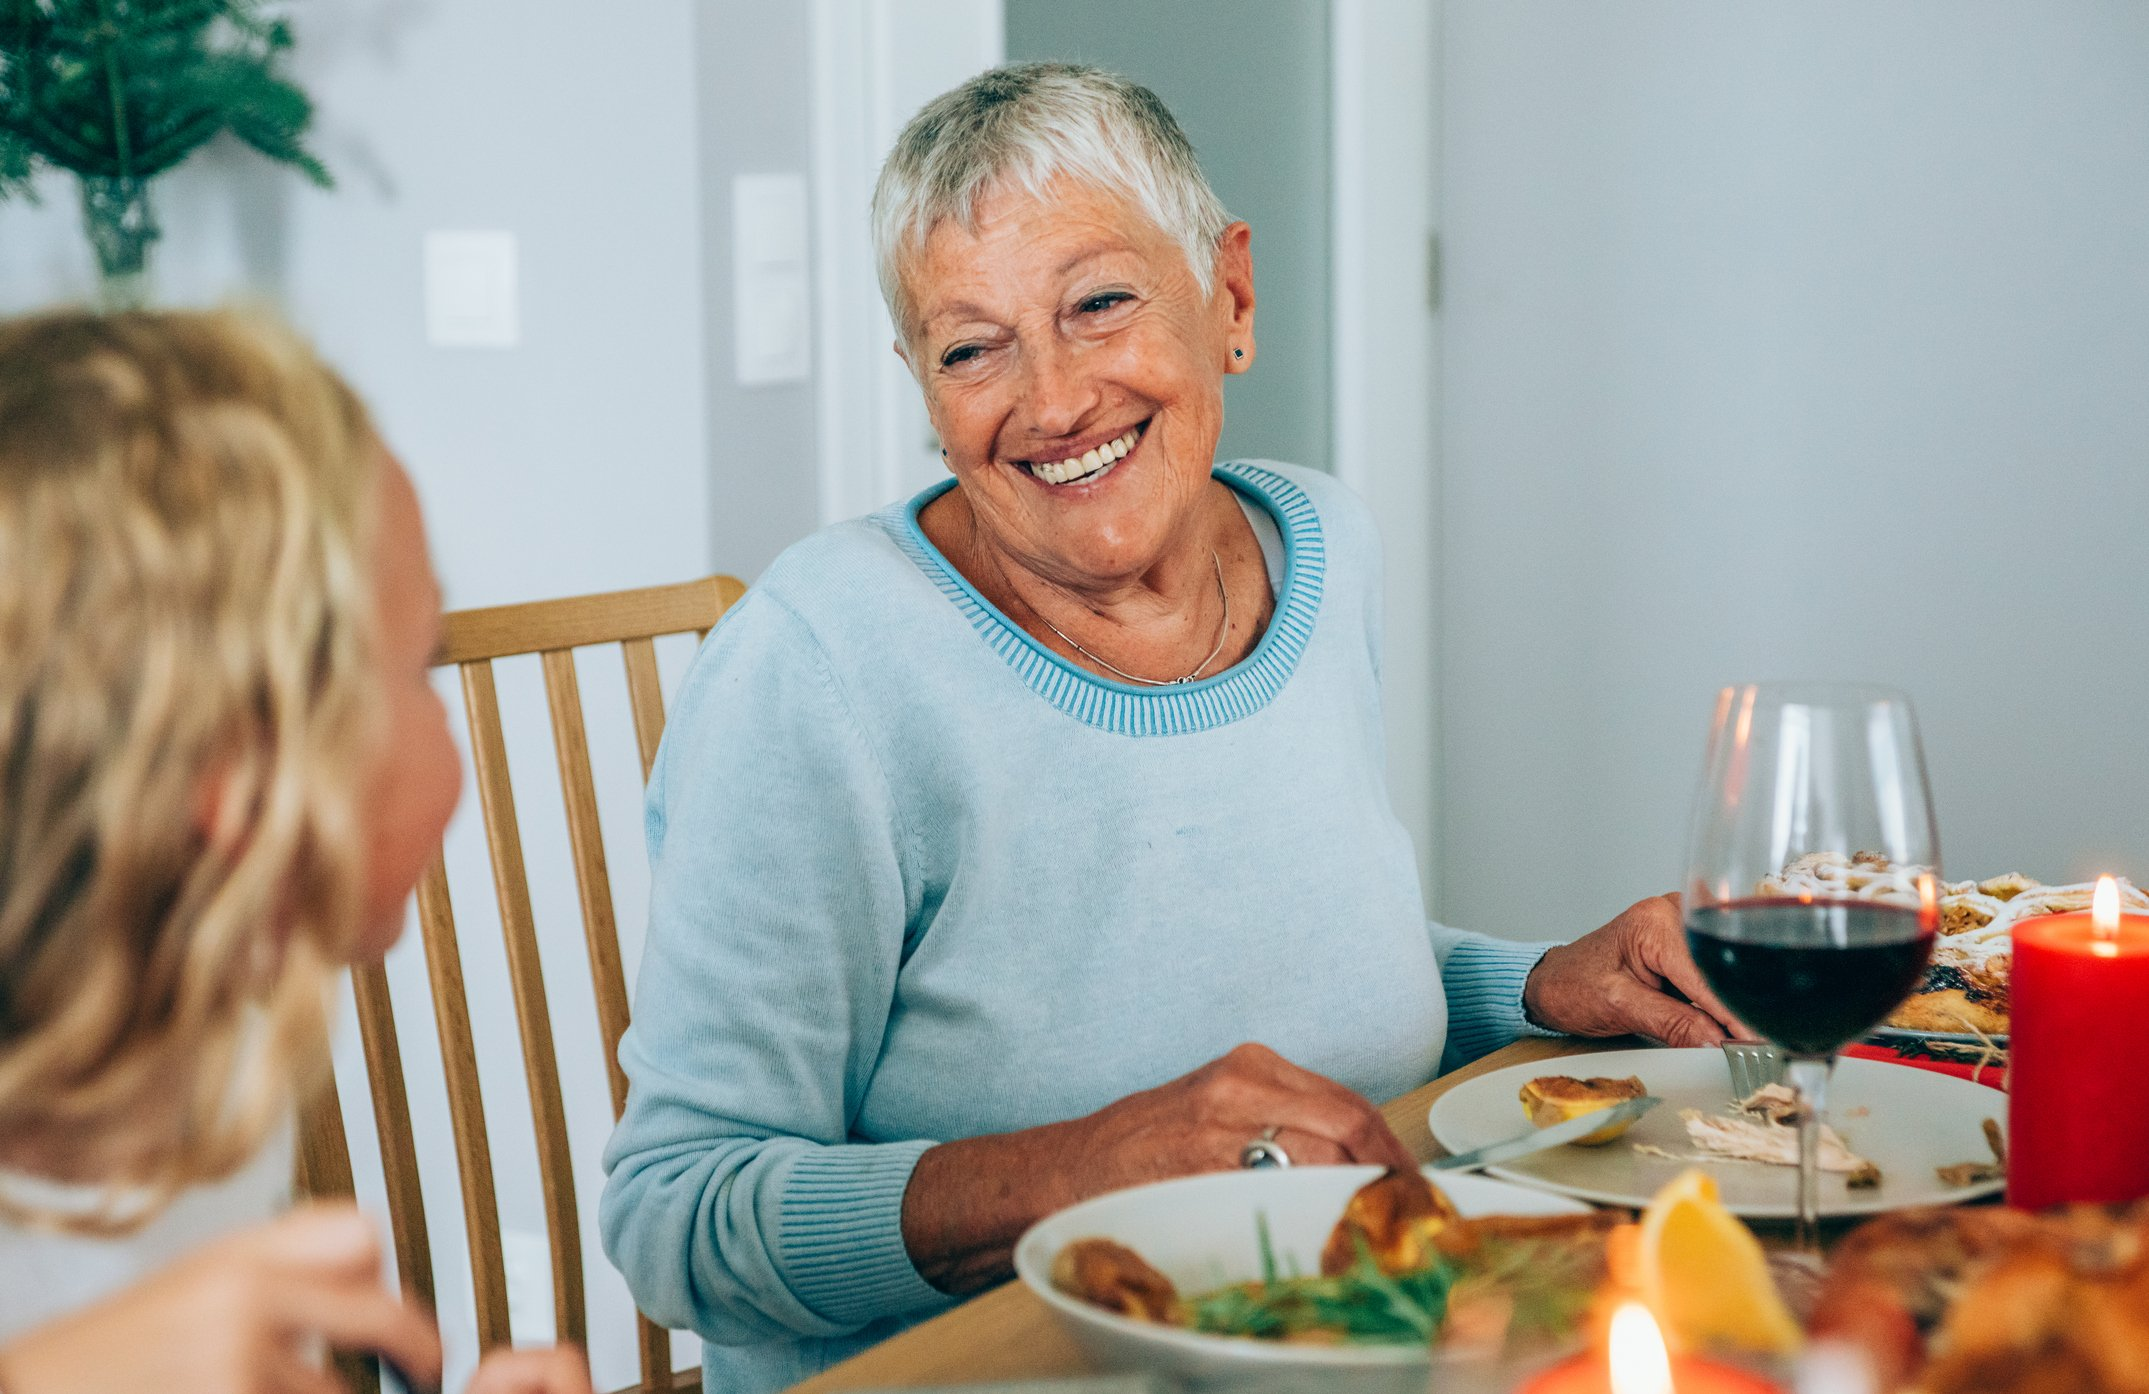 Photo of smiling senior woman during holiday dinner | Photo: Getty Images